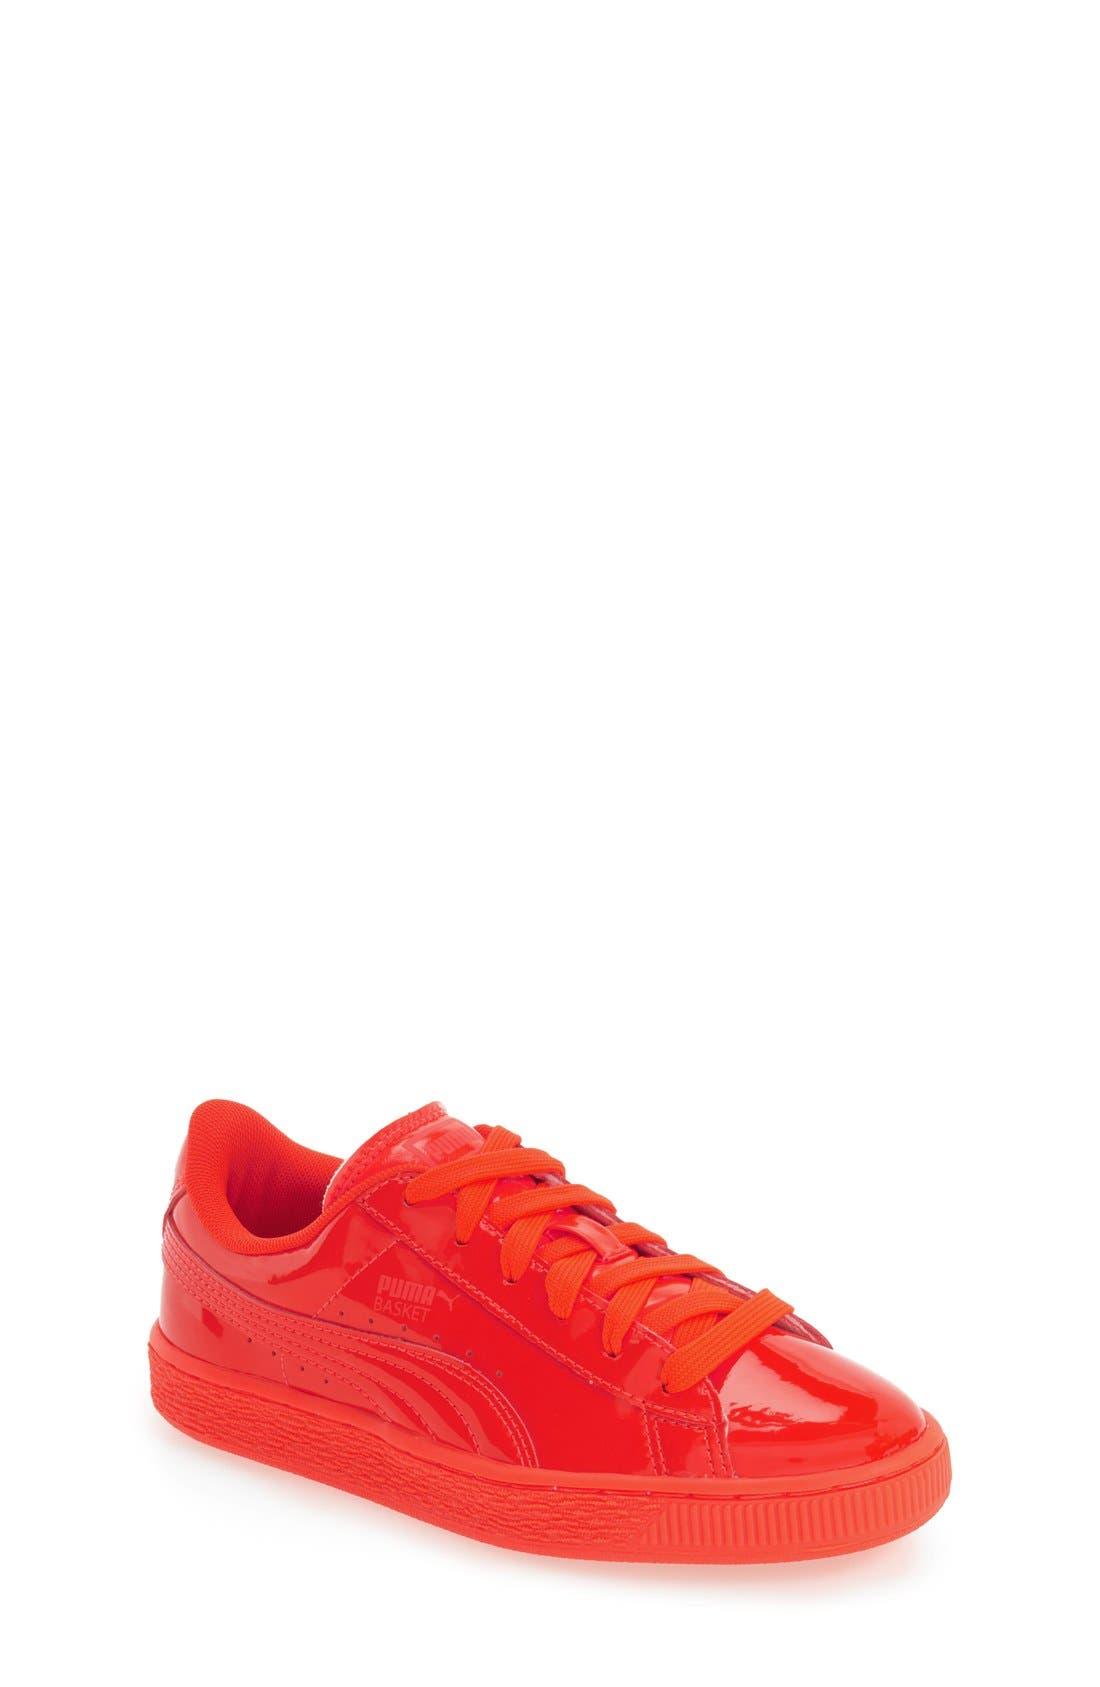 'Basket Classic' Sneaker,                         Main,                         color, Red Blast/ Red Blast